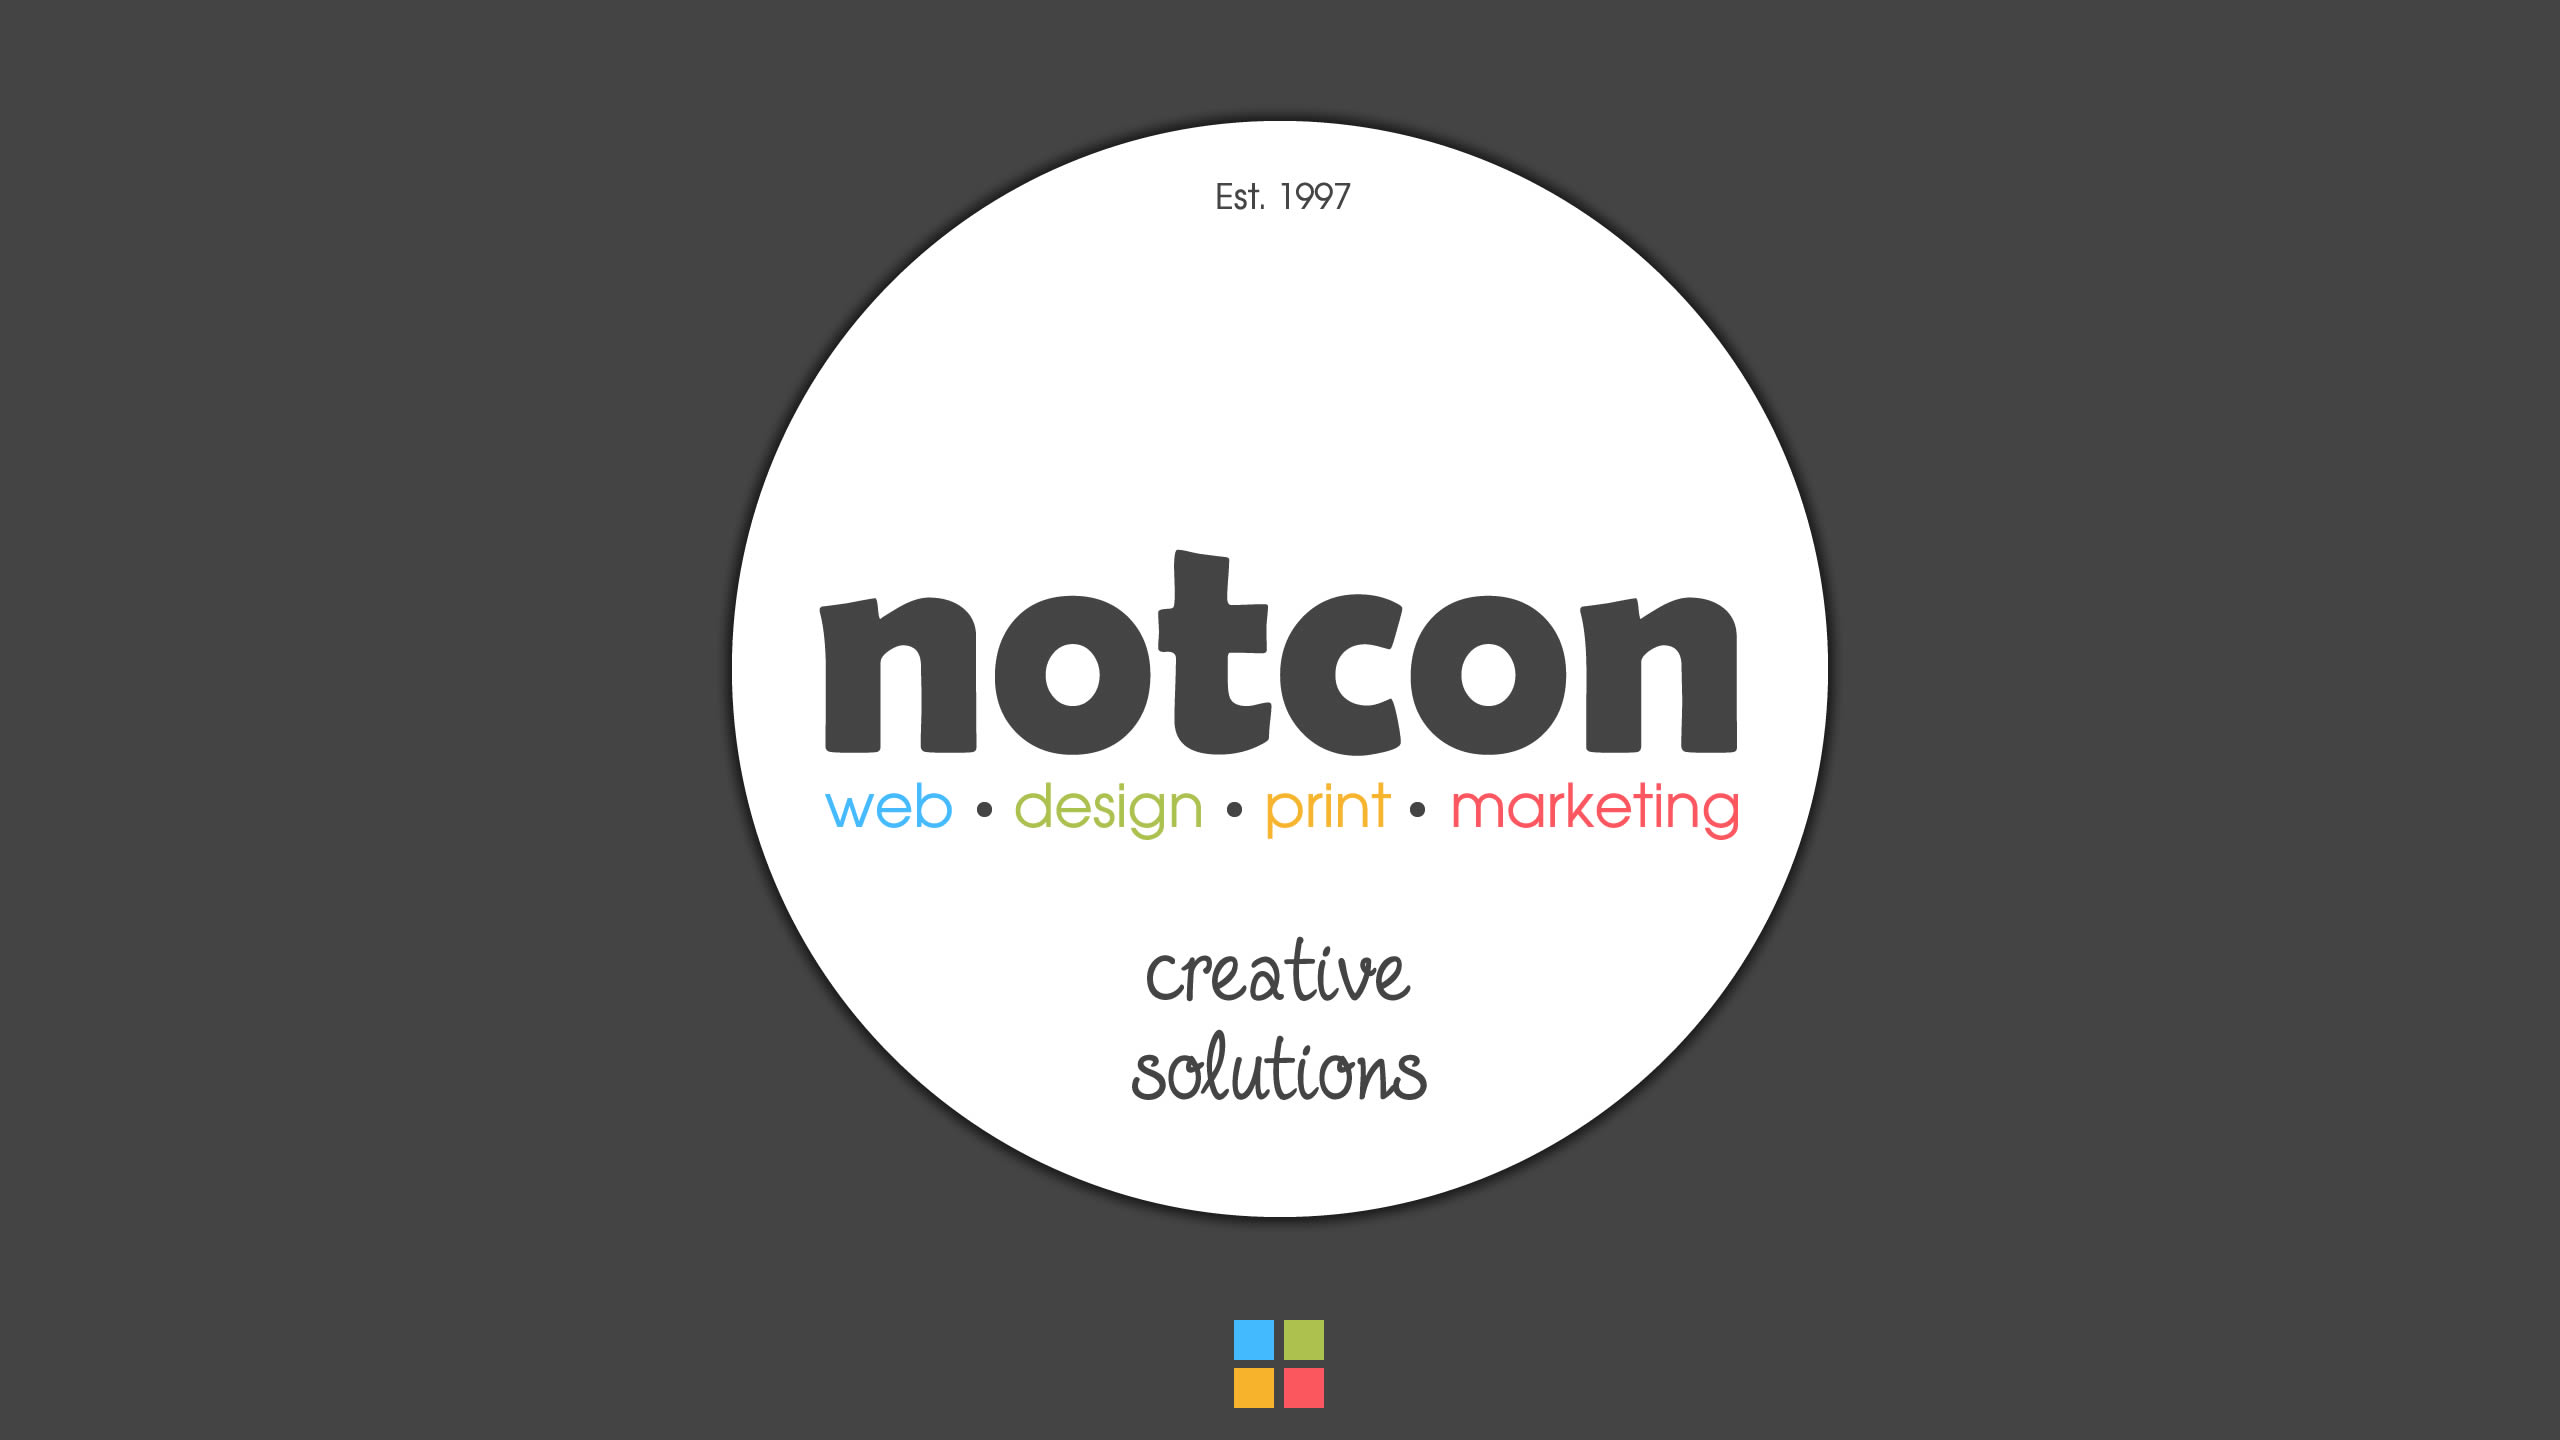 notcon - website designers, printers, graphic designers and online marketing firm